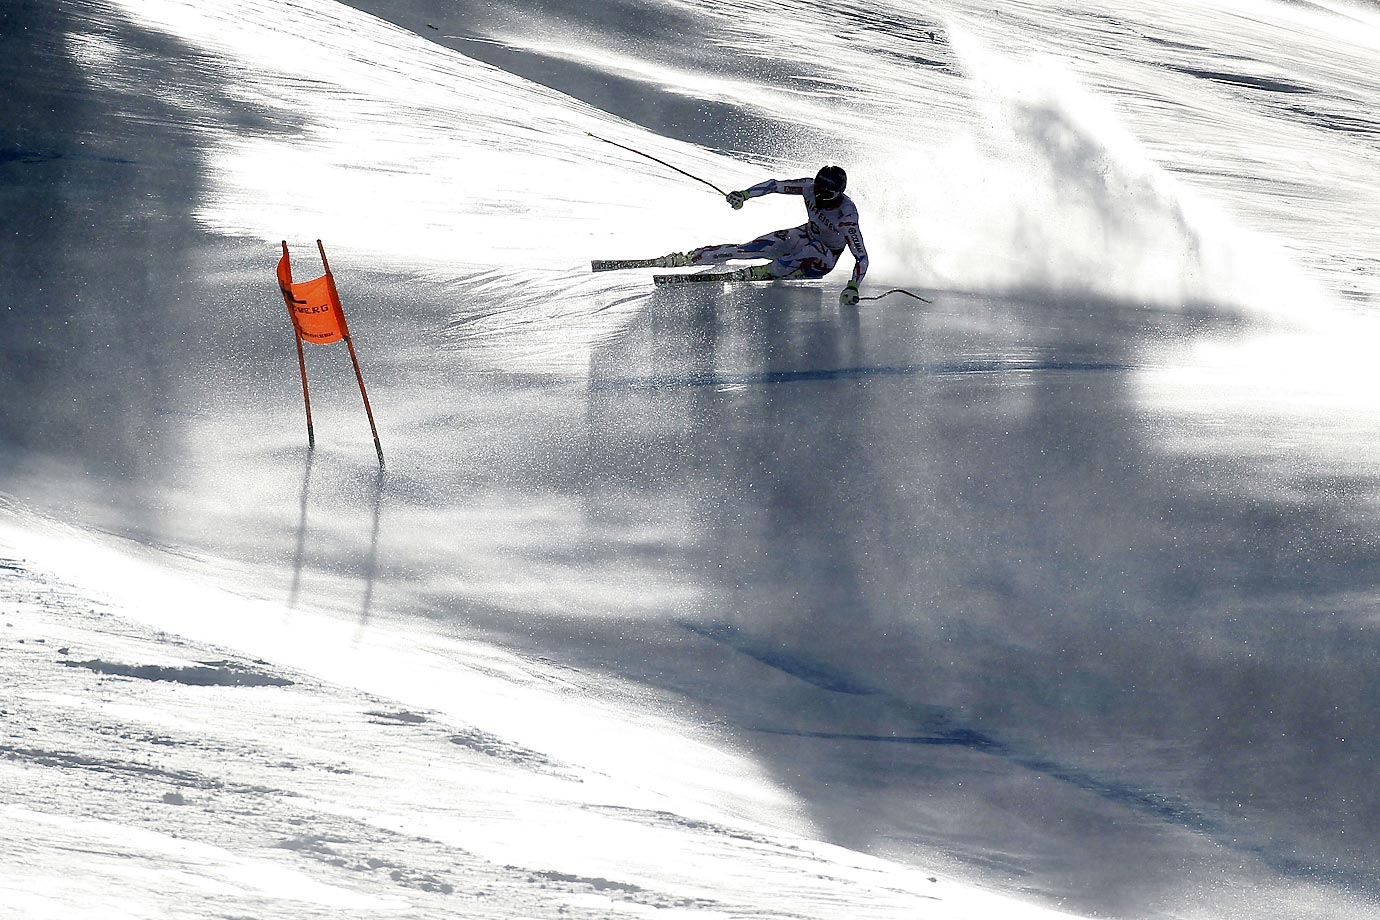 Adrien Theaux of France during the FIS Alpine World Ski Championships Downhill in Beaver Creek, Colo.